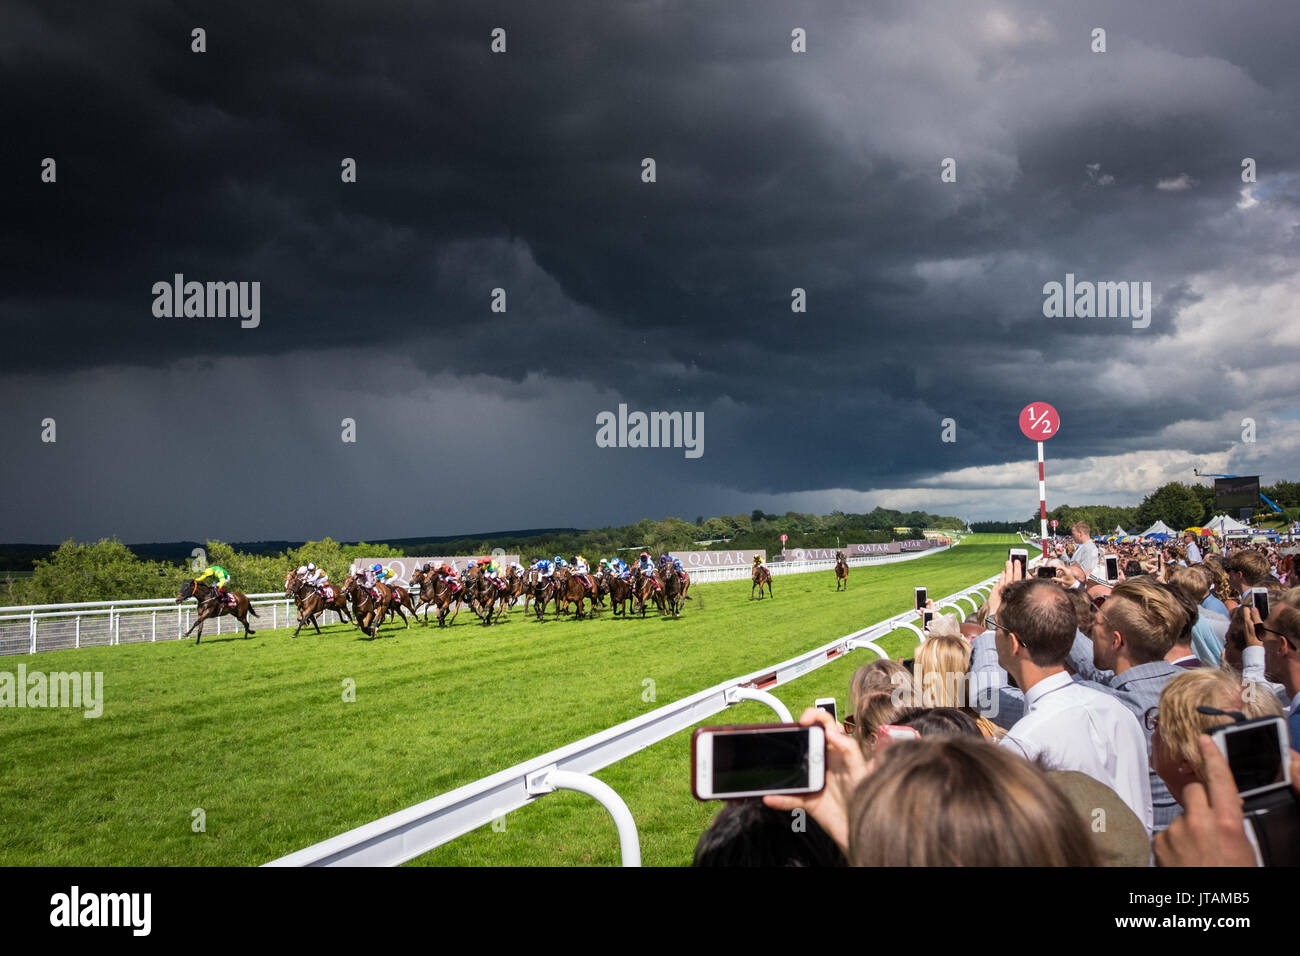 Storm clouds pass during the horse racing at Glorious Goodwood 2017 in West Sussex - Stock Image